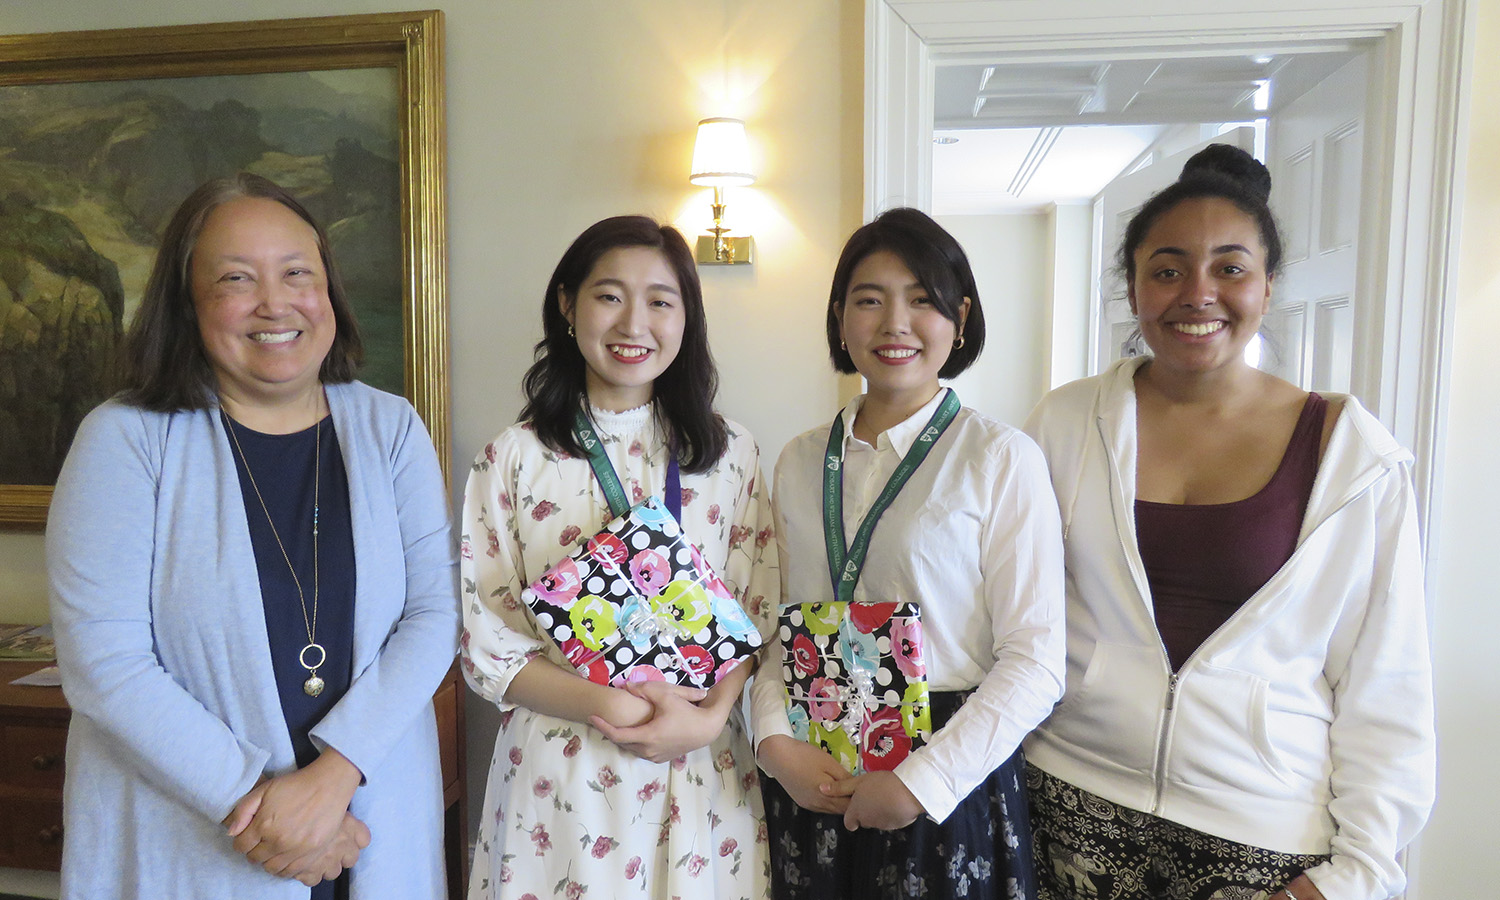 President Joyce P. Jacobsen and Dominique Marshall 'xx (right) welcome Technos International Students Yui Omata and Miho Kawamura to campus. Their visit was coordinated by Tanaka Lecturer in Japanese Kyoko Klaus.